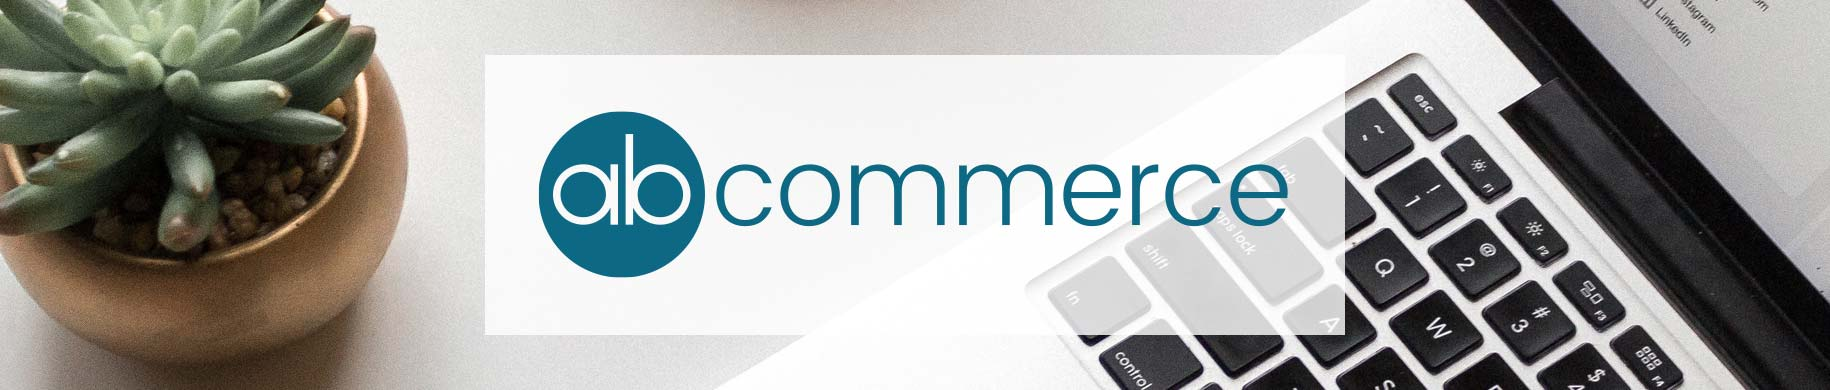 abcommerce solution